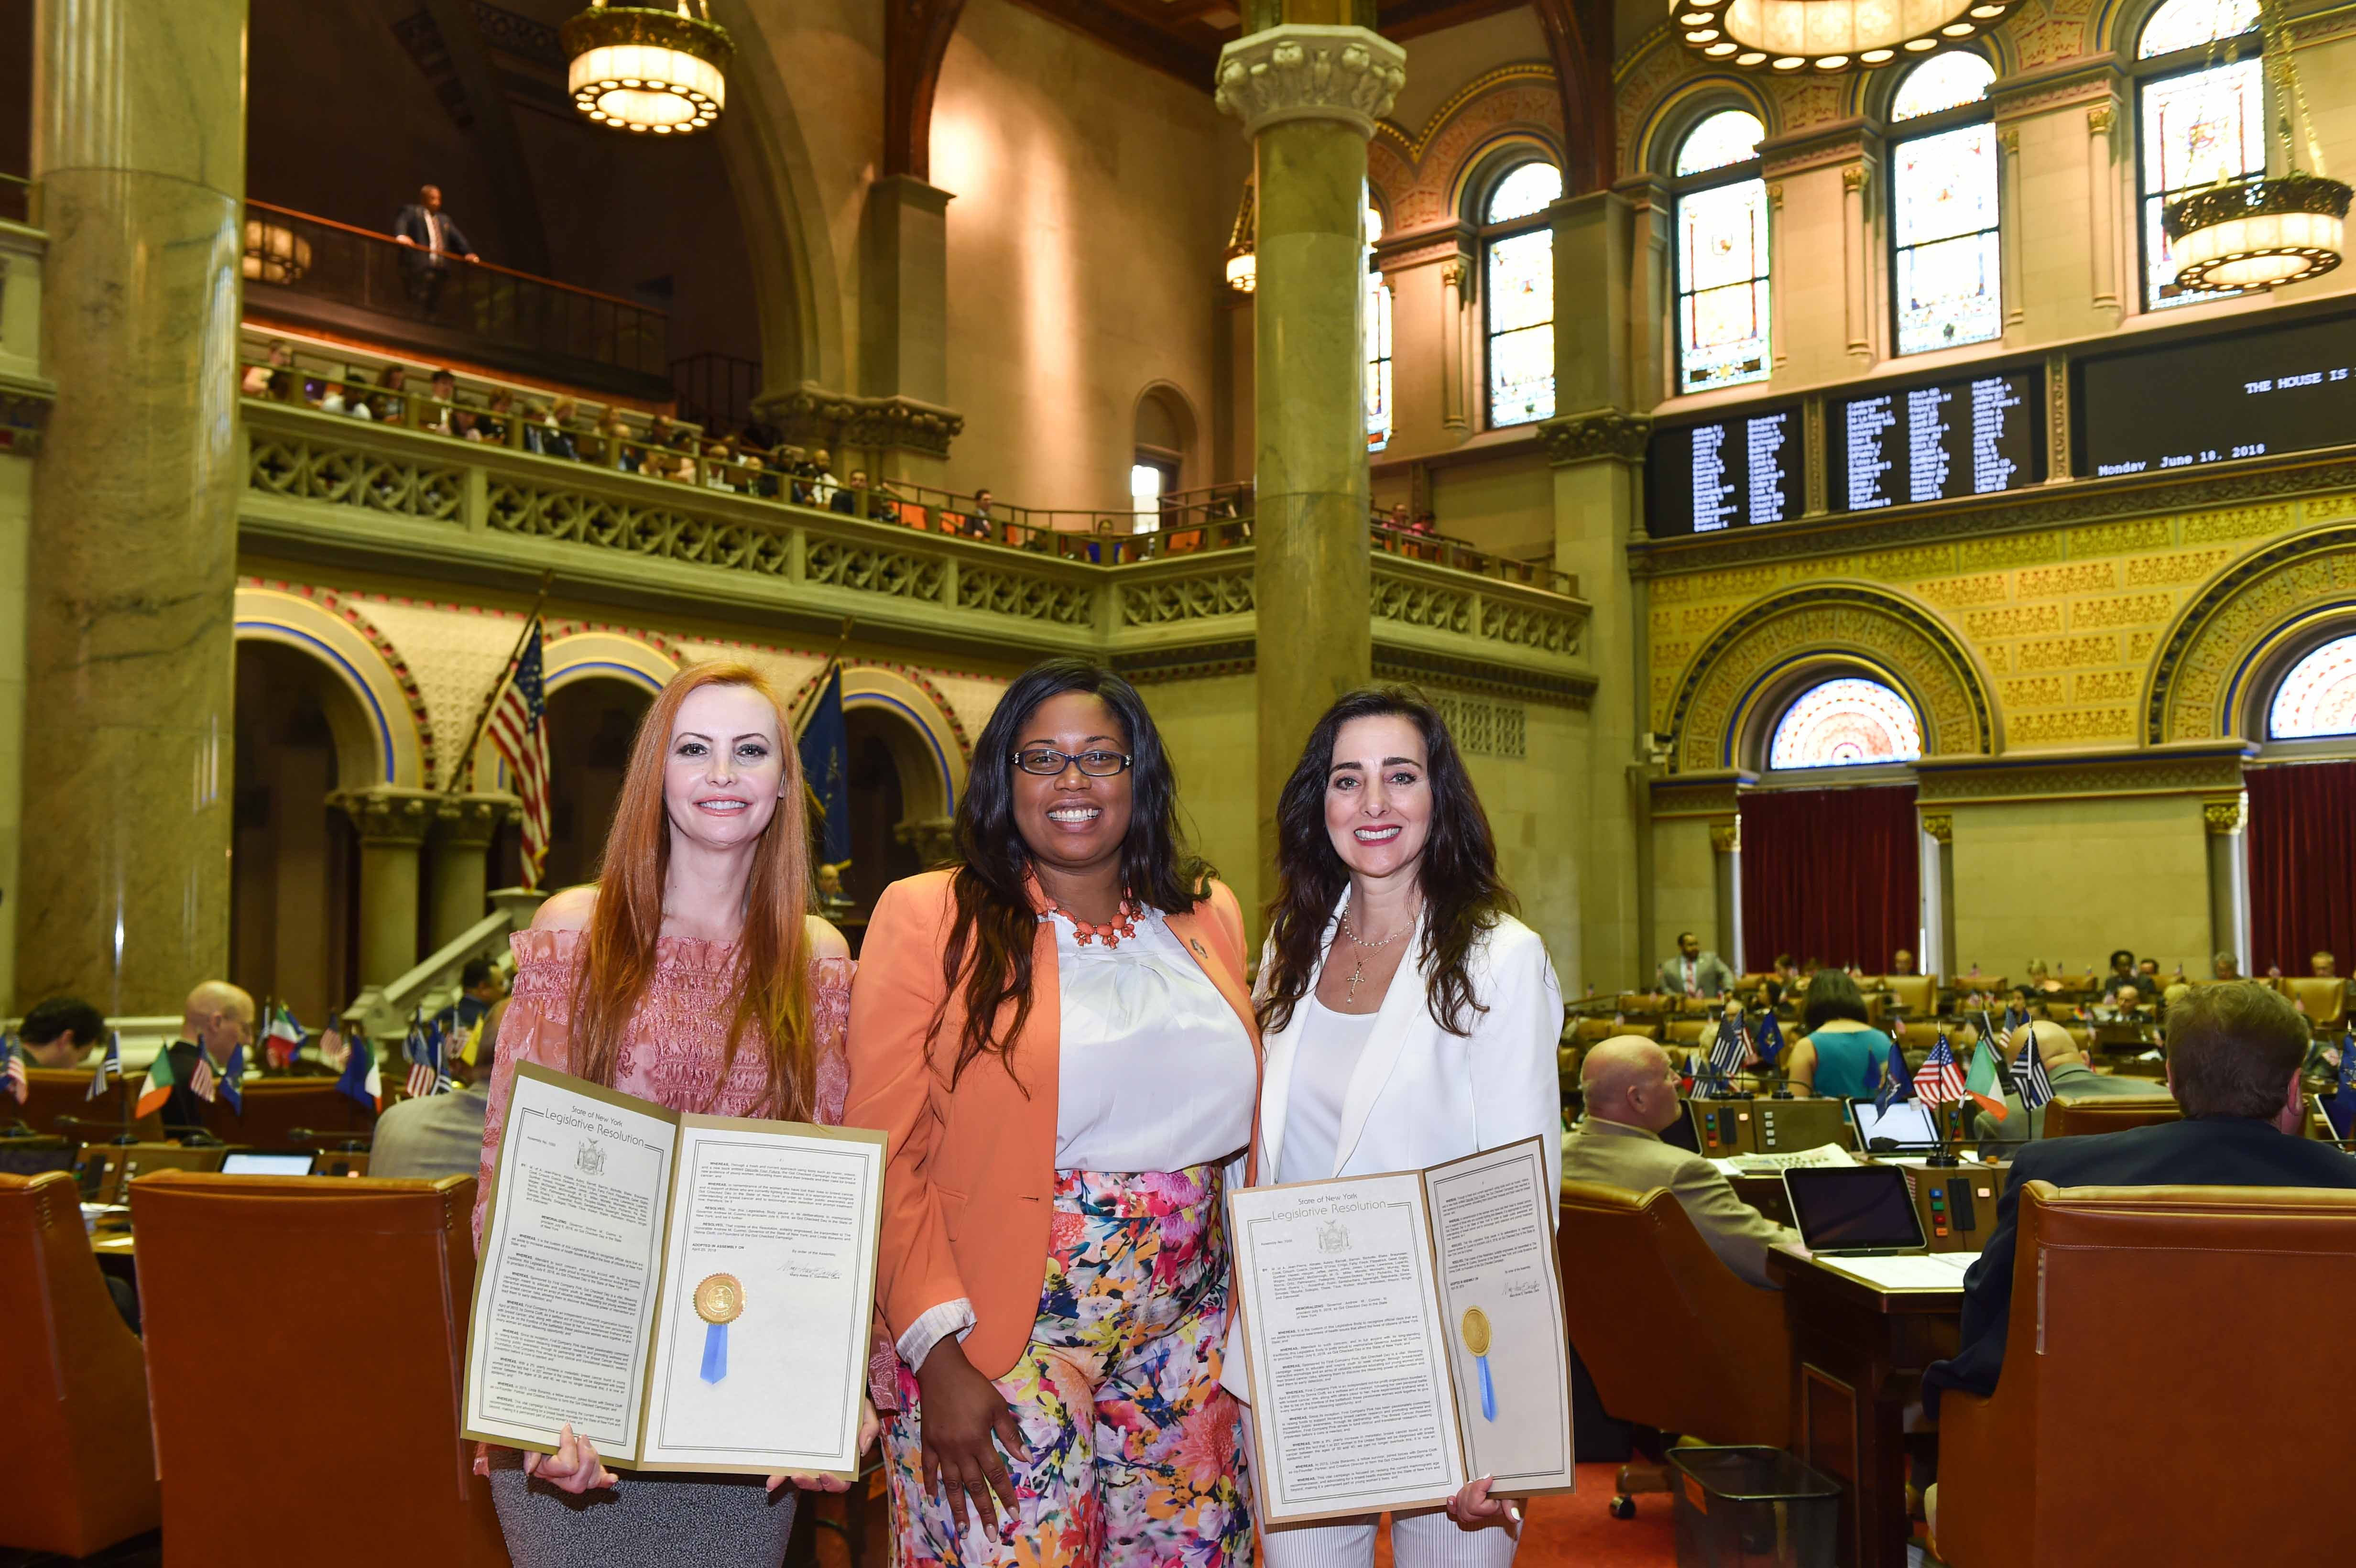 Assemblywoman Kimberly Jean-Pierre with Donna Cioffi and Linda Bonanno from First Company Pink, a non-profit organization dedicated to breast cancer education and prevention.